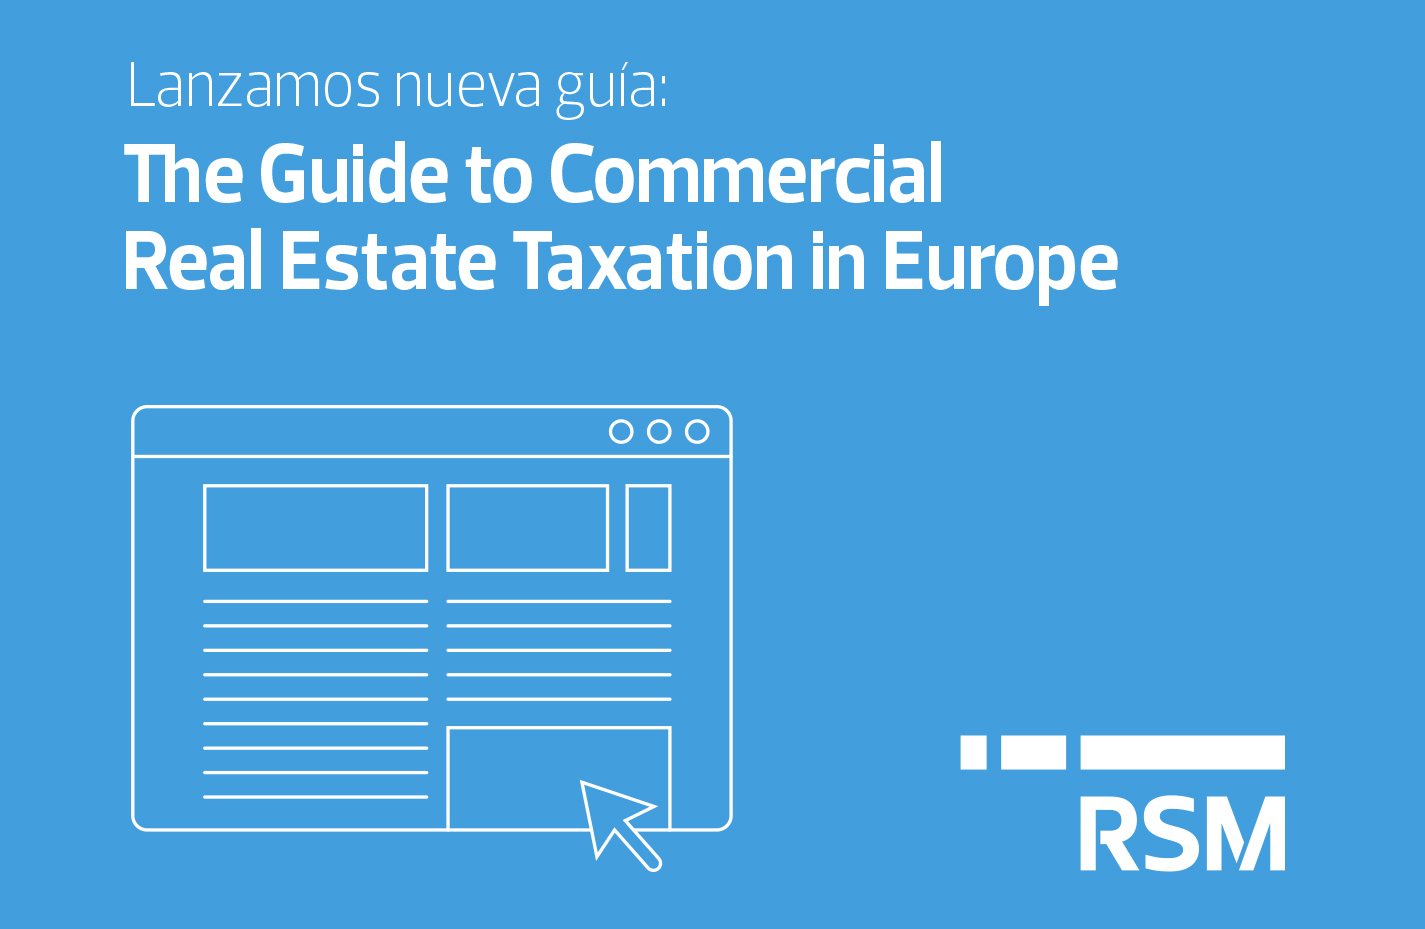 European Real Estate Tax Guide launched by RSM and Nyenrode Business University